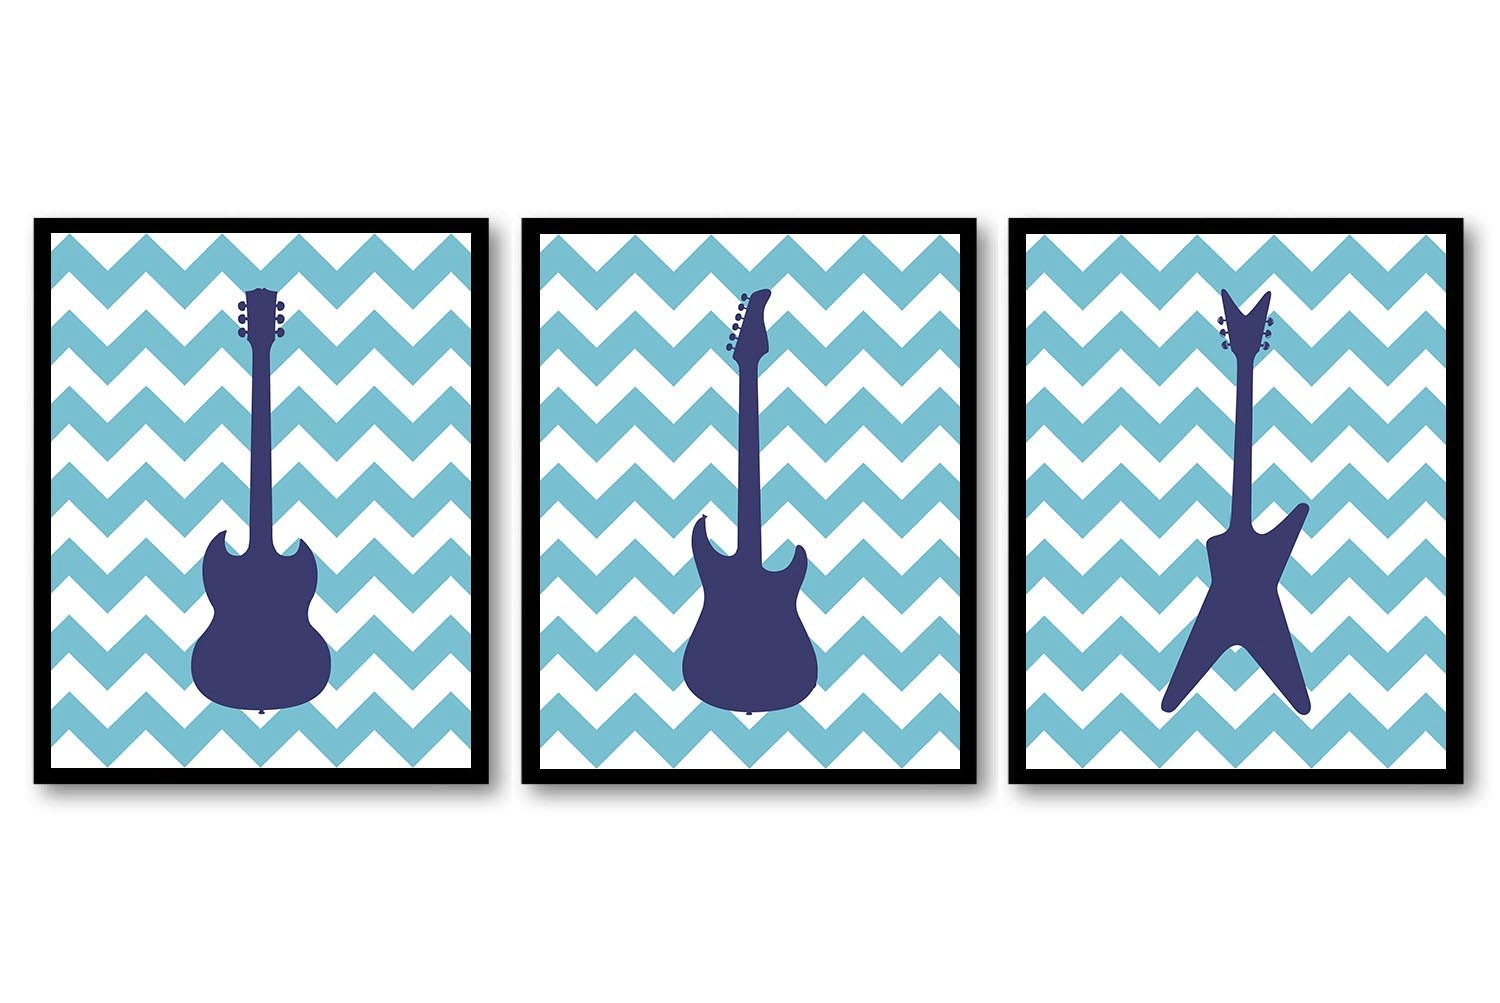 Electric Guitar Nursery Art Nursery Prints Set of 3 Prints Navy Blue Chevron Boys Art Nursery Print